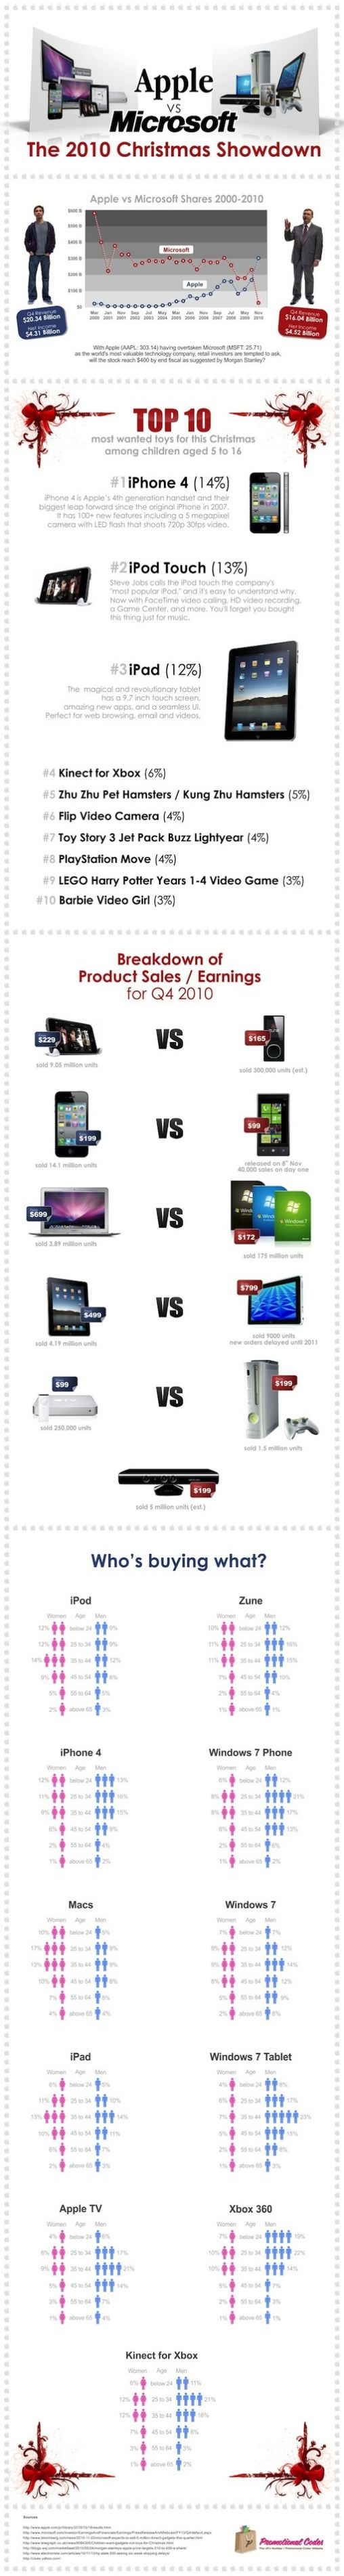 apple-microsoft-christmas-sales-graphic22